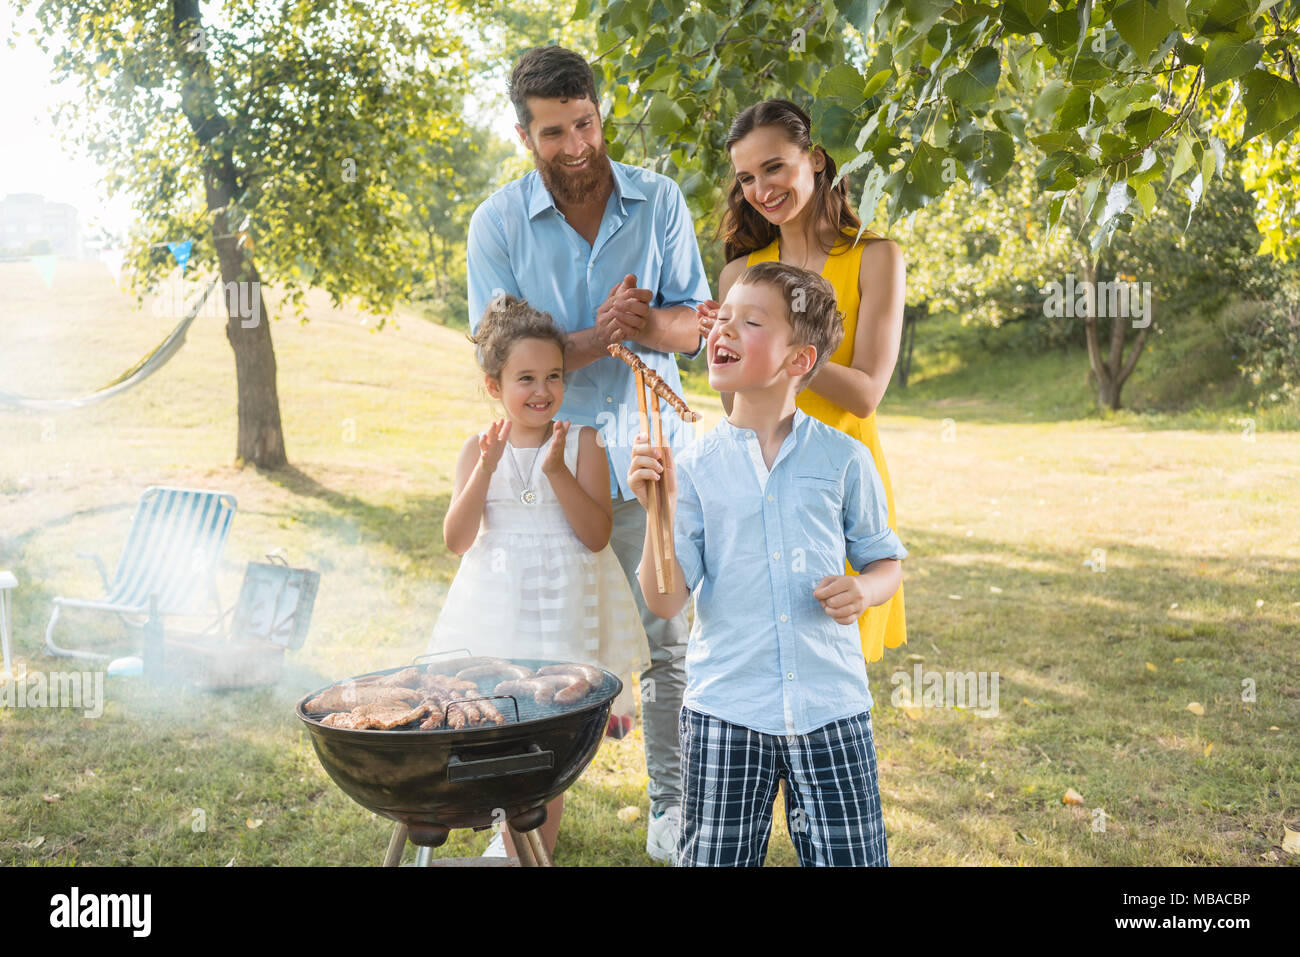 Portrait of happy family with two children outdoors - Stock Image